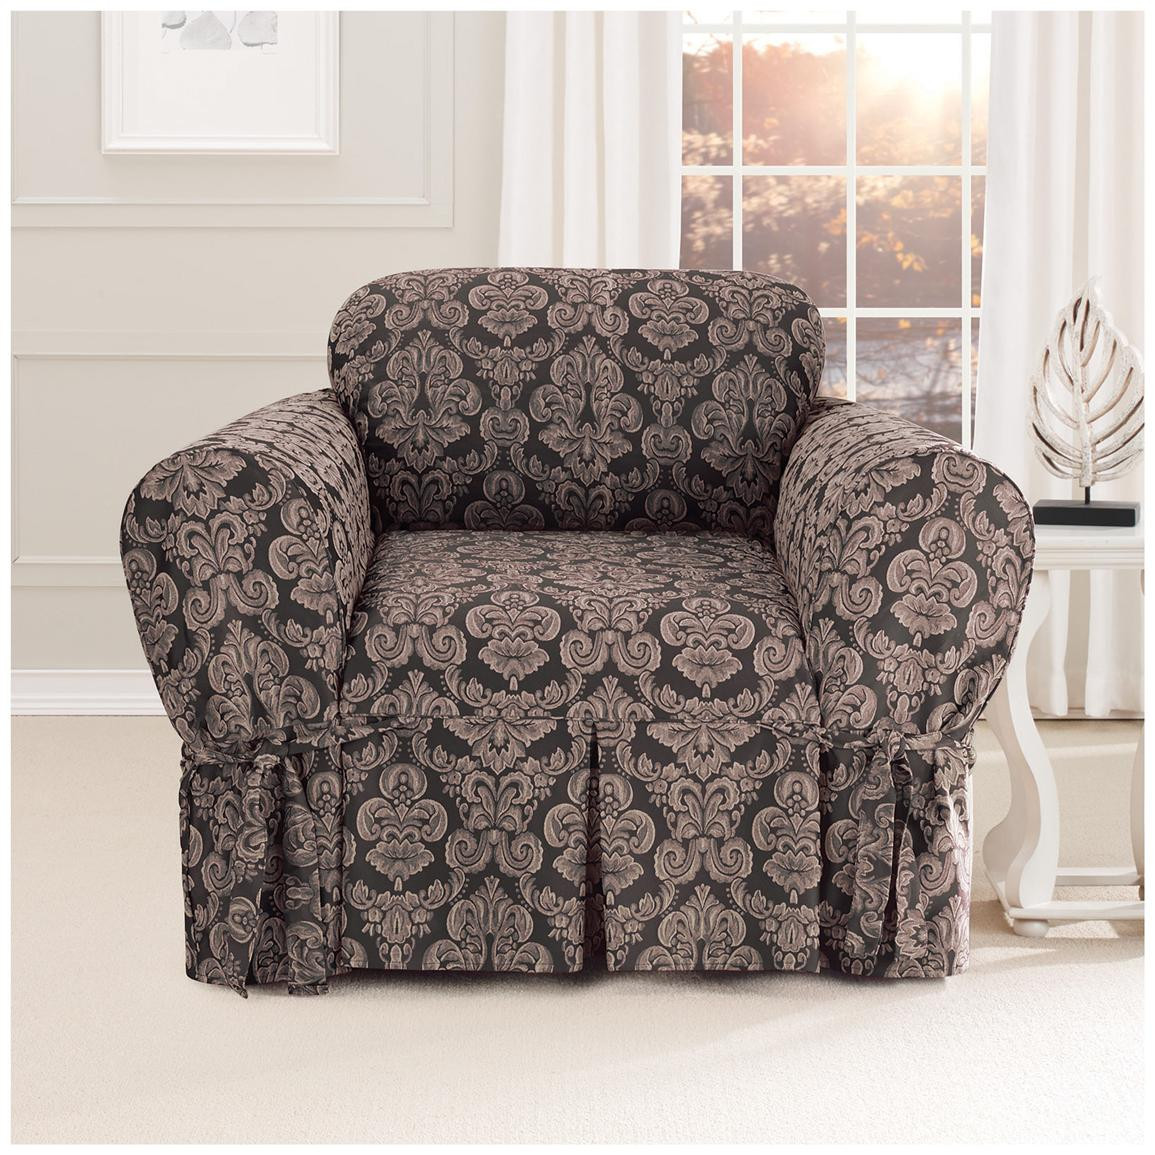 Best ideas about Surefit Chair Cover . Save or Pin Sure Fit Middleton Chair Slipcover Furniture Now.